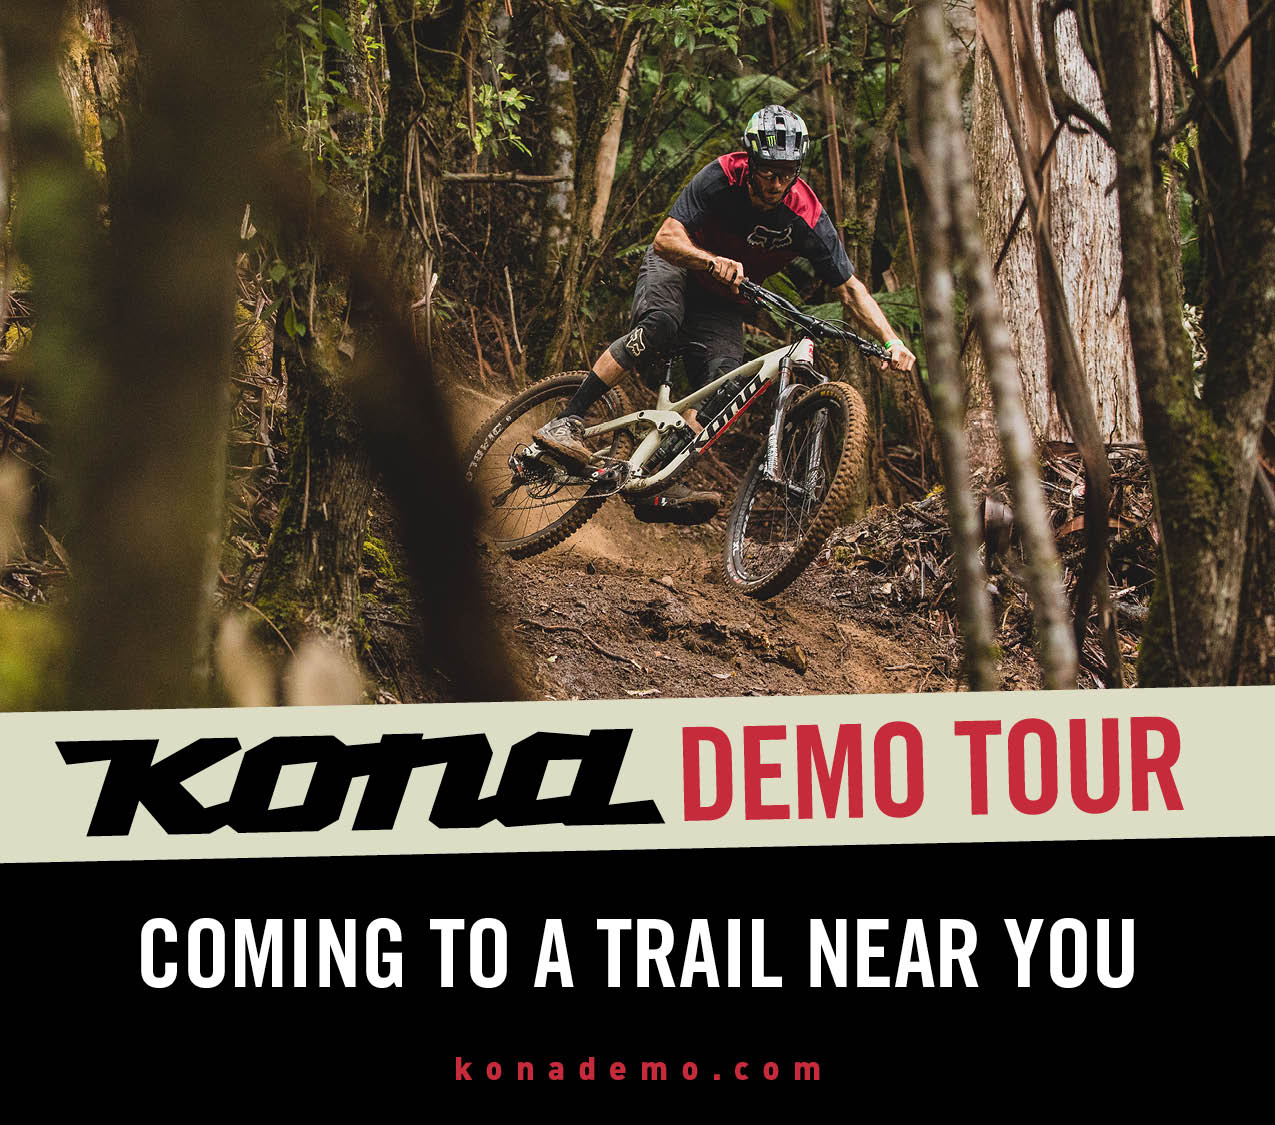 North Carolina & Virginia, the KONA Demo Tour is headed your way!